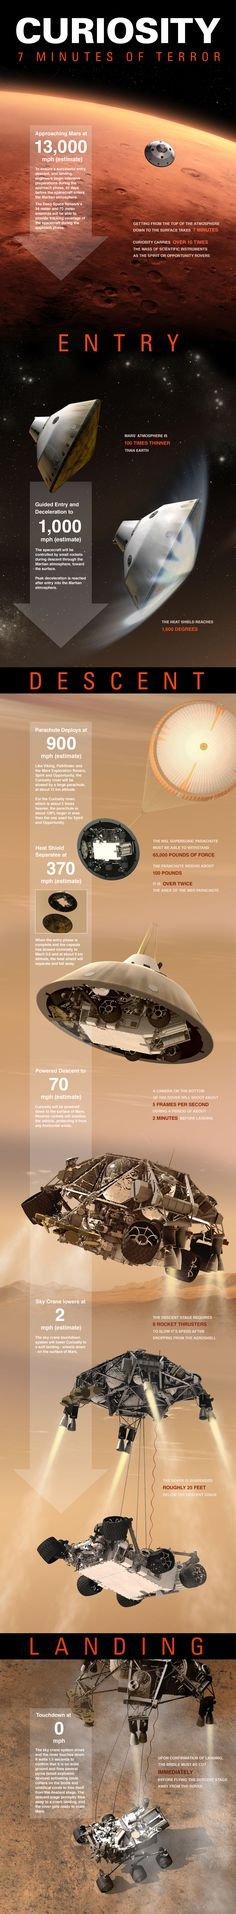 Curiosity - 7 Minutes of Terror - NASA Jet Propulsion Laboratory #infographic